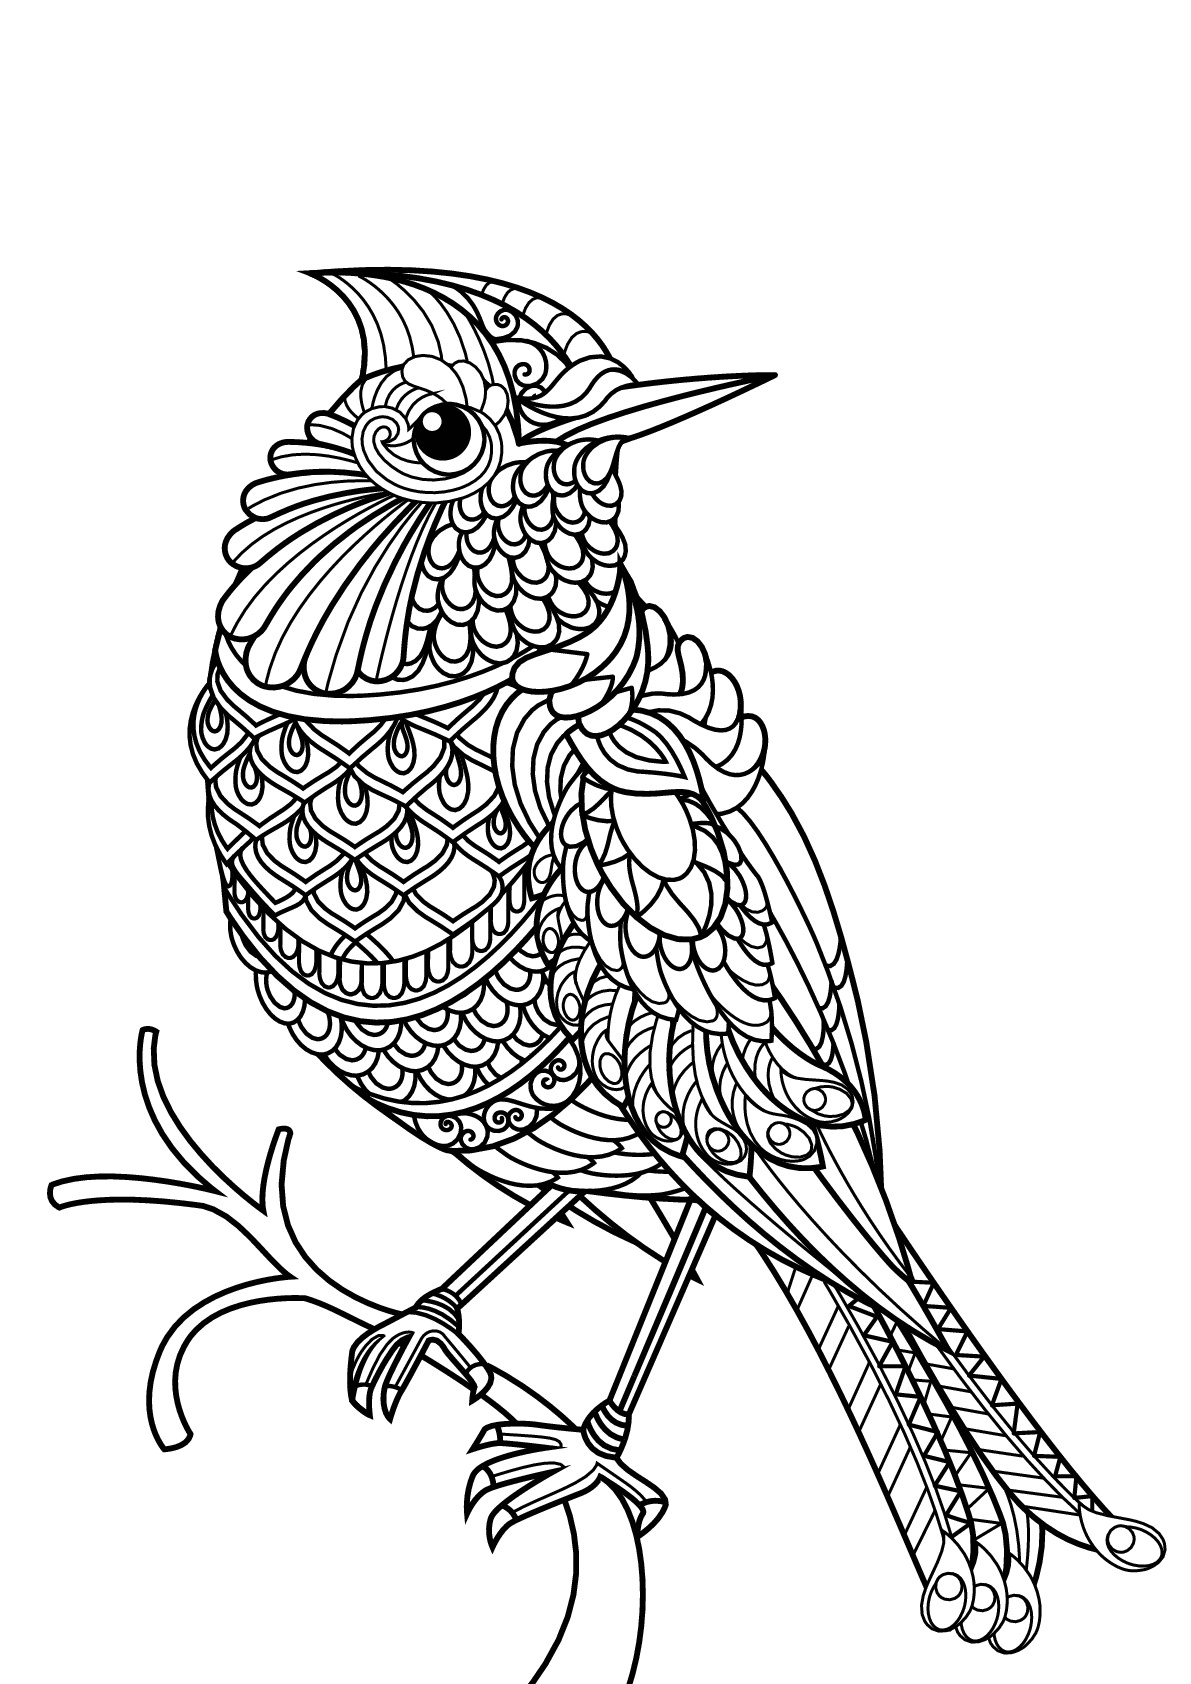 bird coloring pages for adults arizona bird coloring pages for adults bestappsforkidscom coloring bird for pages adults